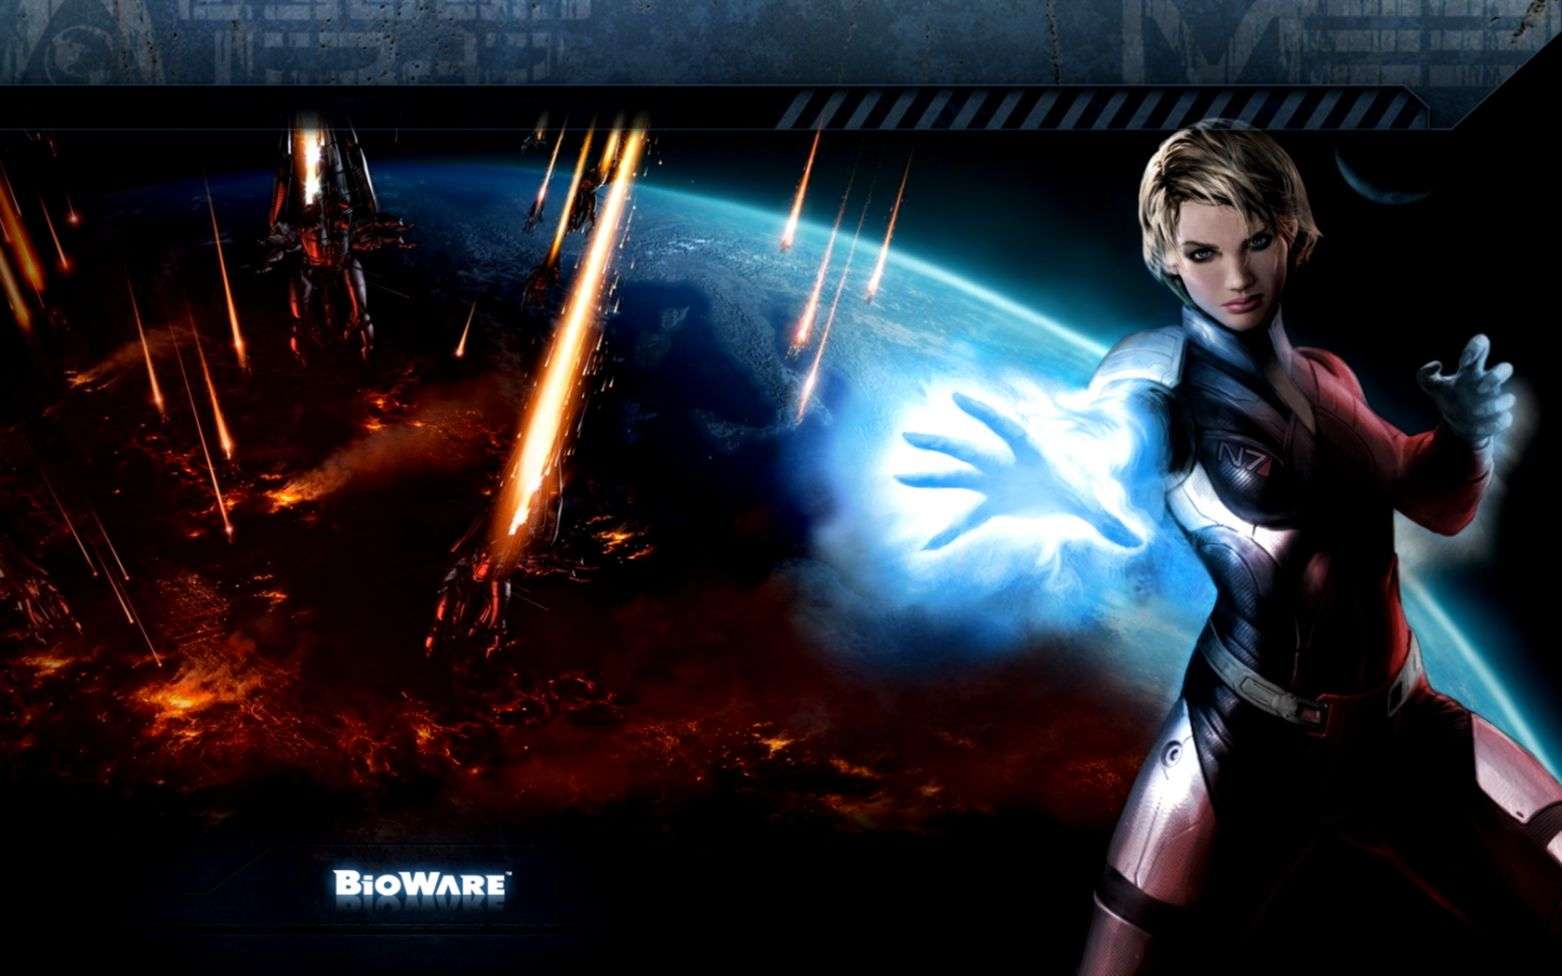 Mass Effect 3 Girl Wallpapers Hd Wallpapers Plus